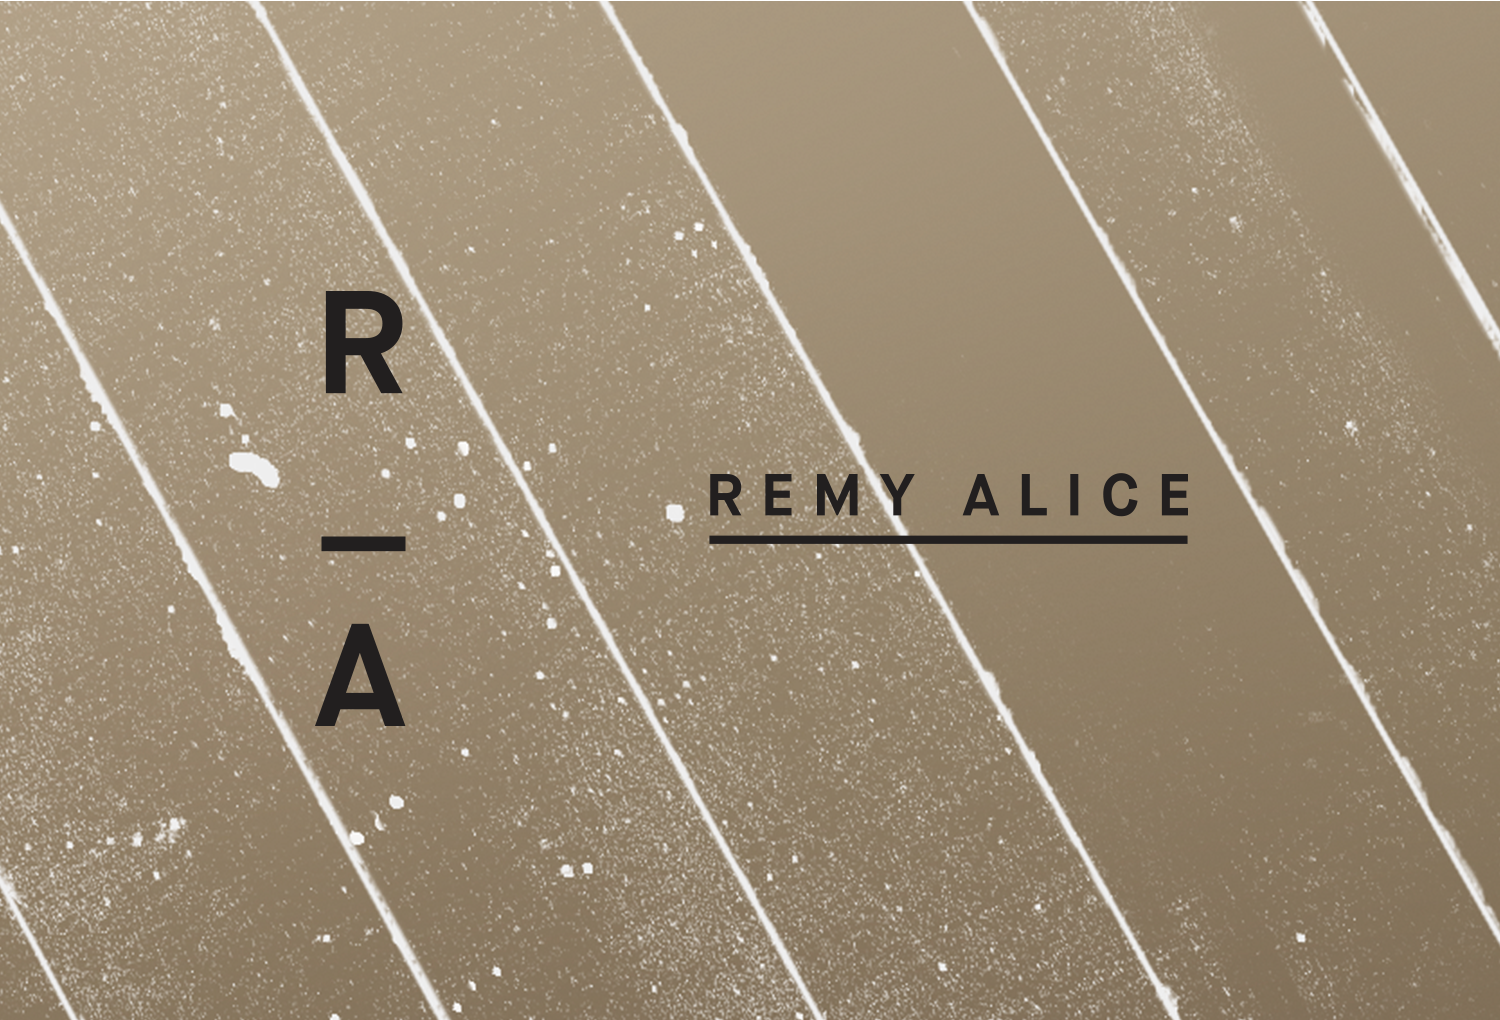 julia-kostreva-studio-branding-identity-3b--logomarques-for-remy-alice-brand-development-house.png